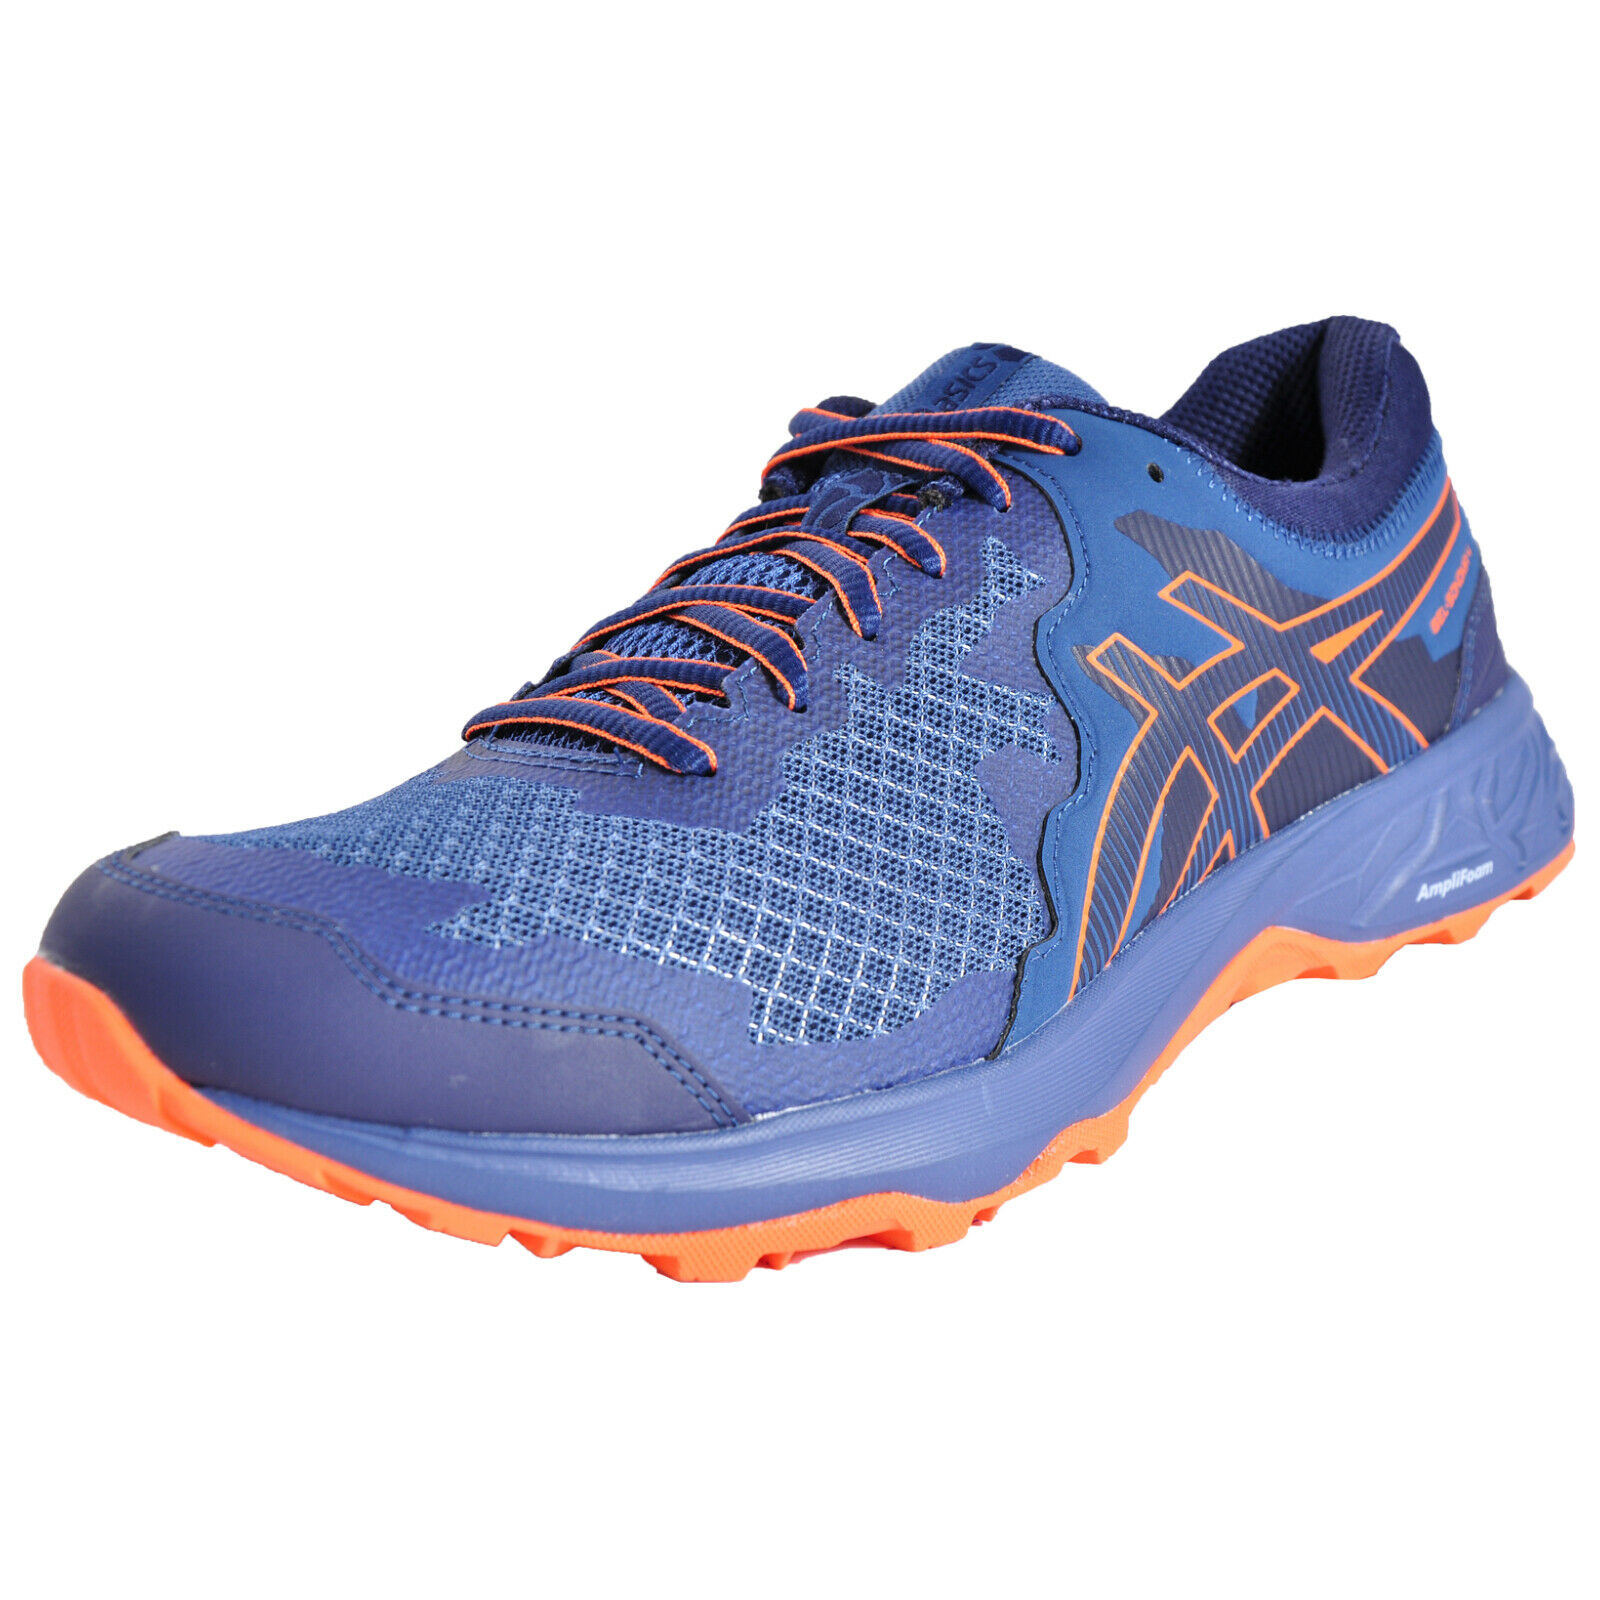 Asics Gel Sonoma 4 Men's All Terrain Trail Running shoes Trainers bluee UK 9 Only